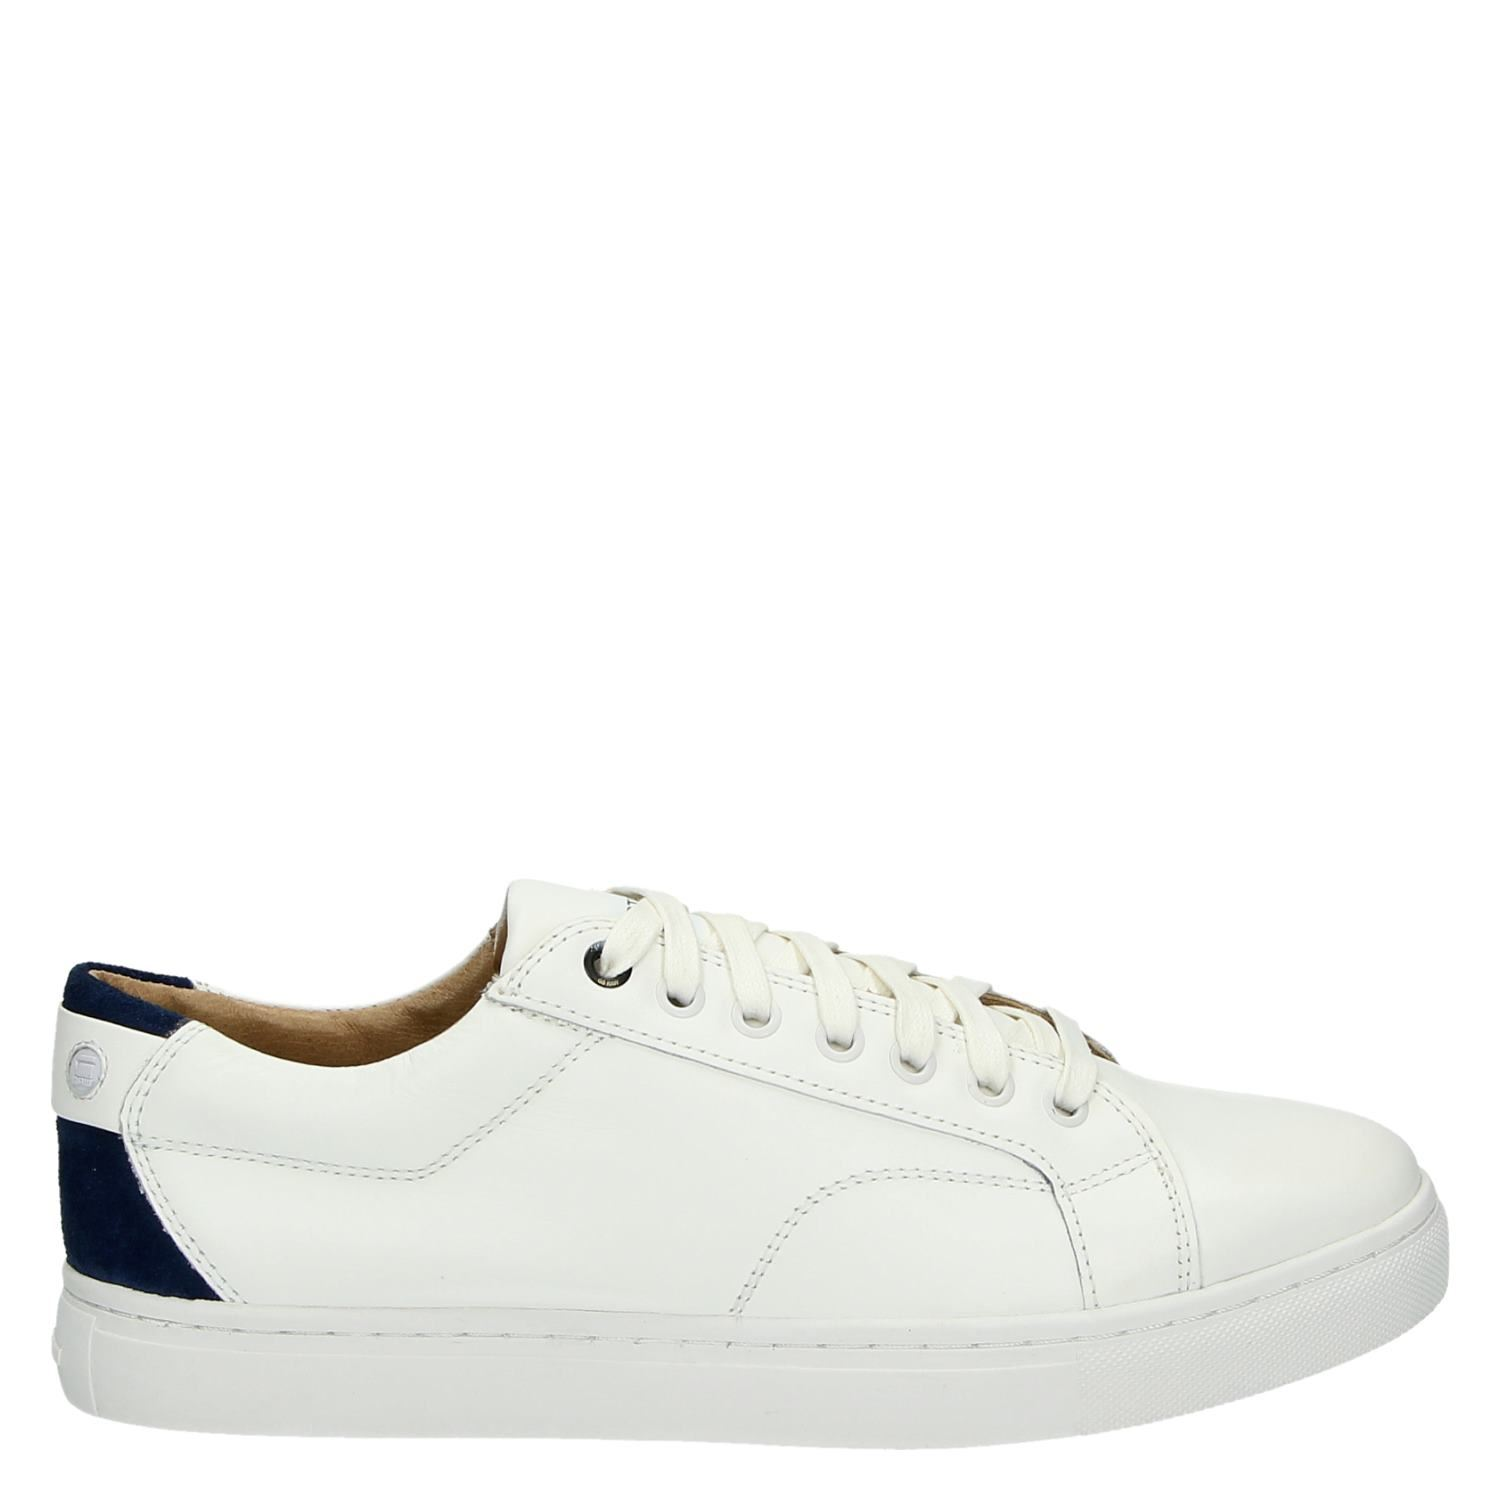 Chaussures Blanches G-star Pour Les Hommes rRoiCbI